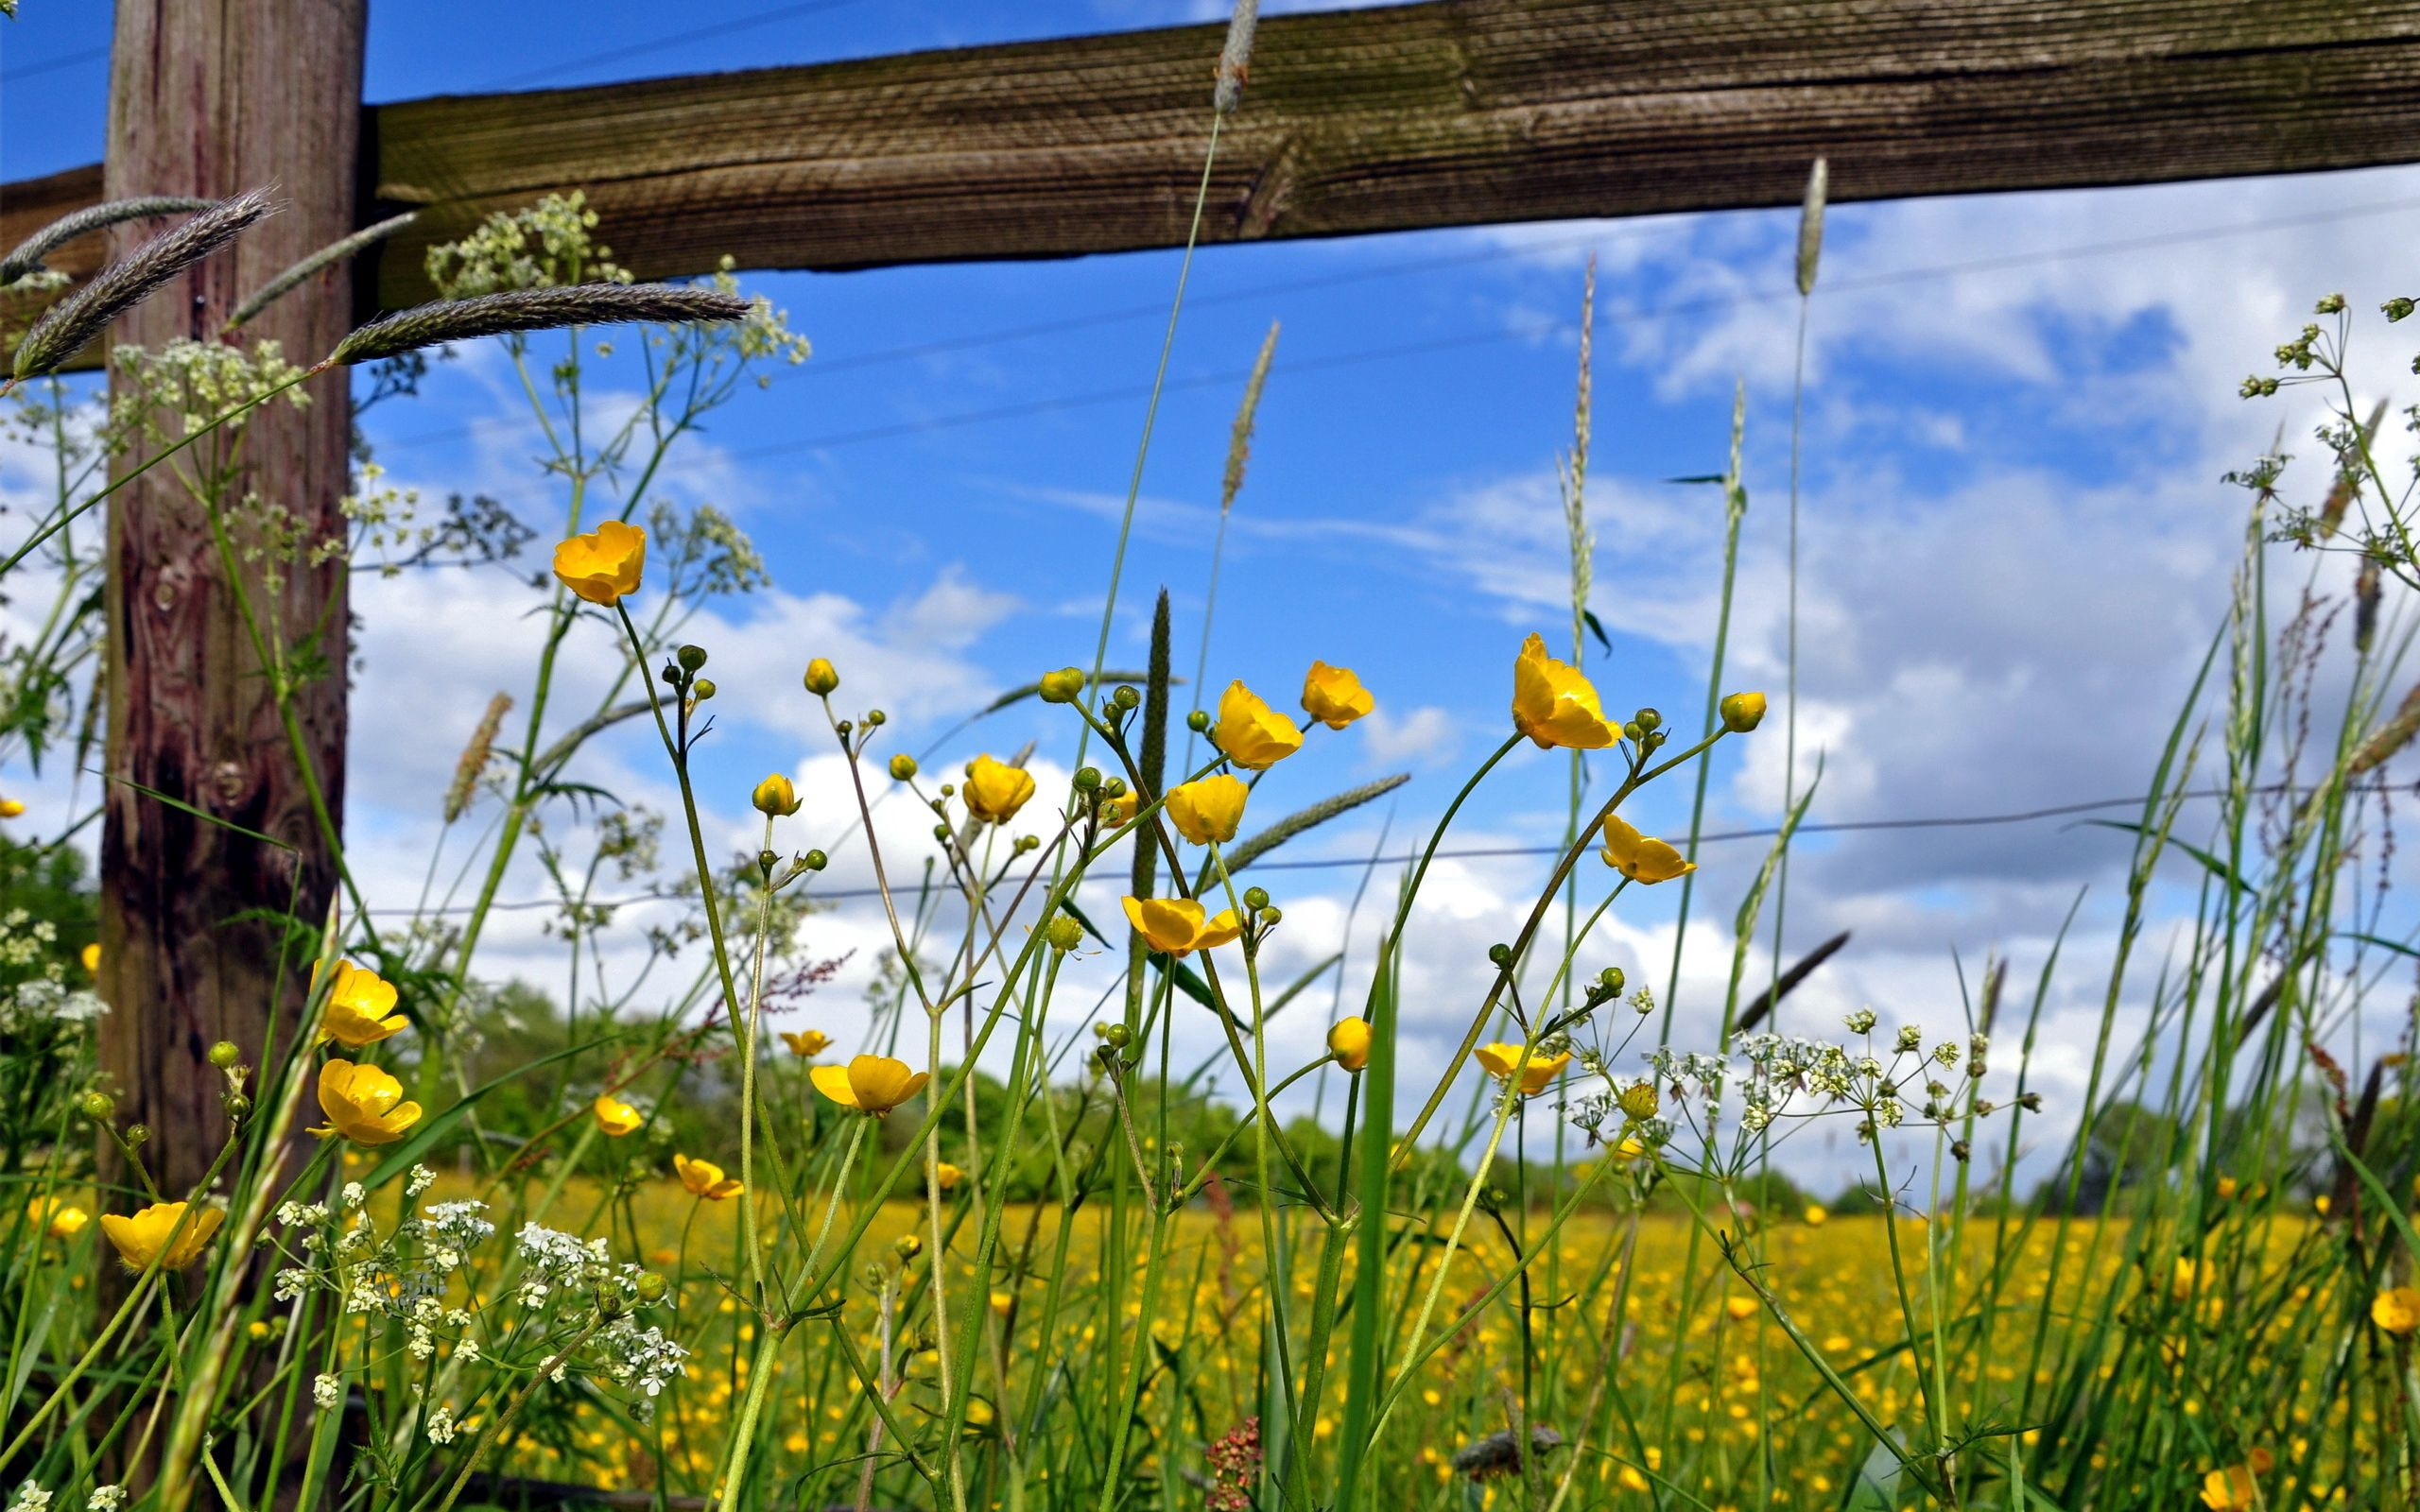 130758 download wallpaper Nature, Fence, Field, Fencing, Enclosure, Planks, Board, Sunny, Flowers screensavers and pictures for free